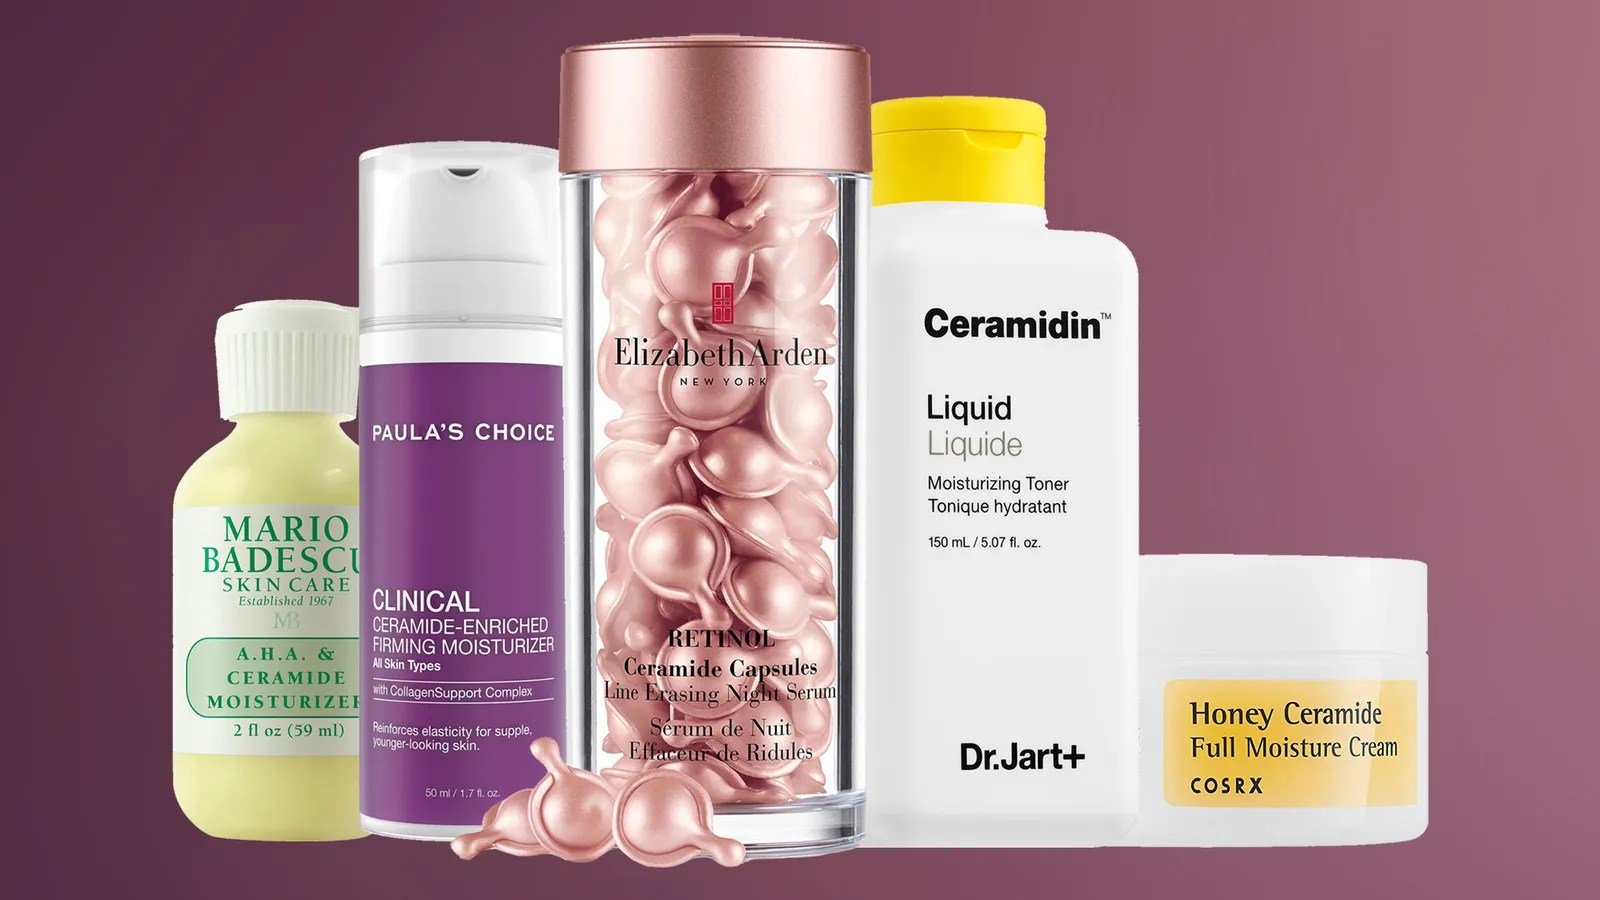 And Cosmetics Skin Care